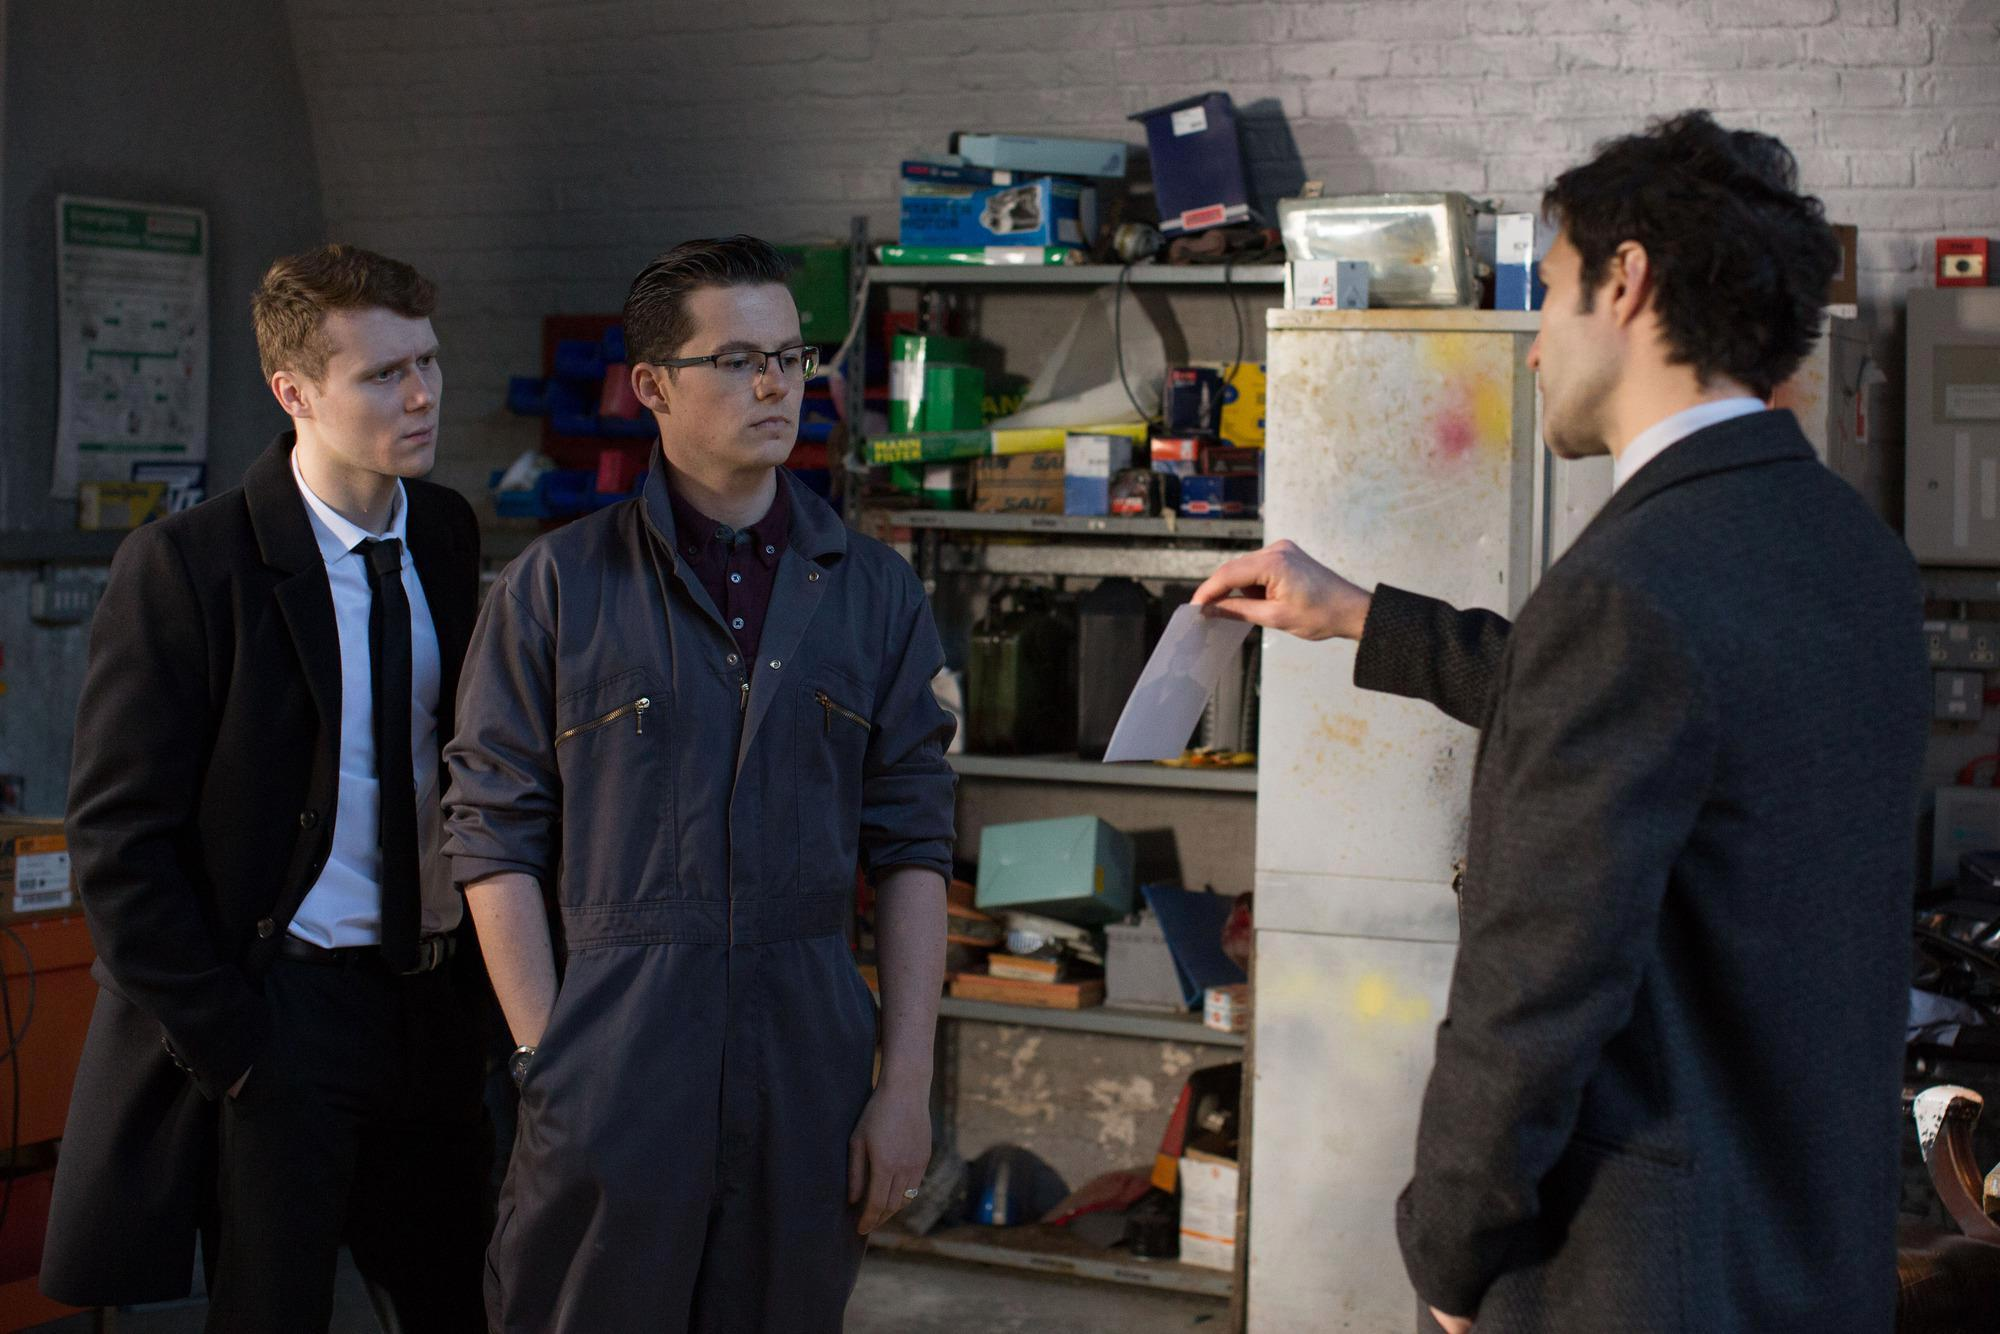 Ben Mitchell and Jay Brown get a shock as police arrive after bungled heist in EastEnders